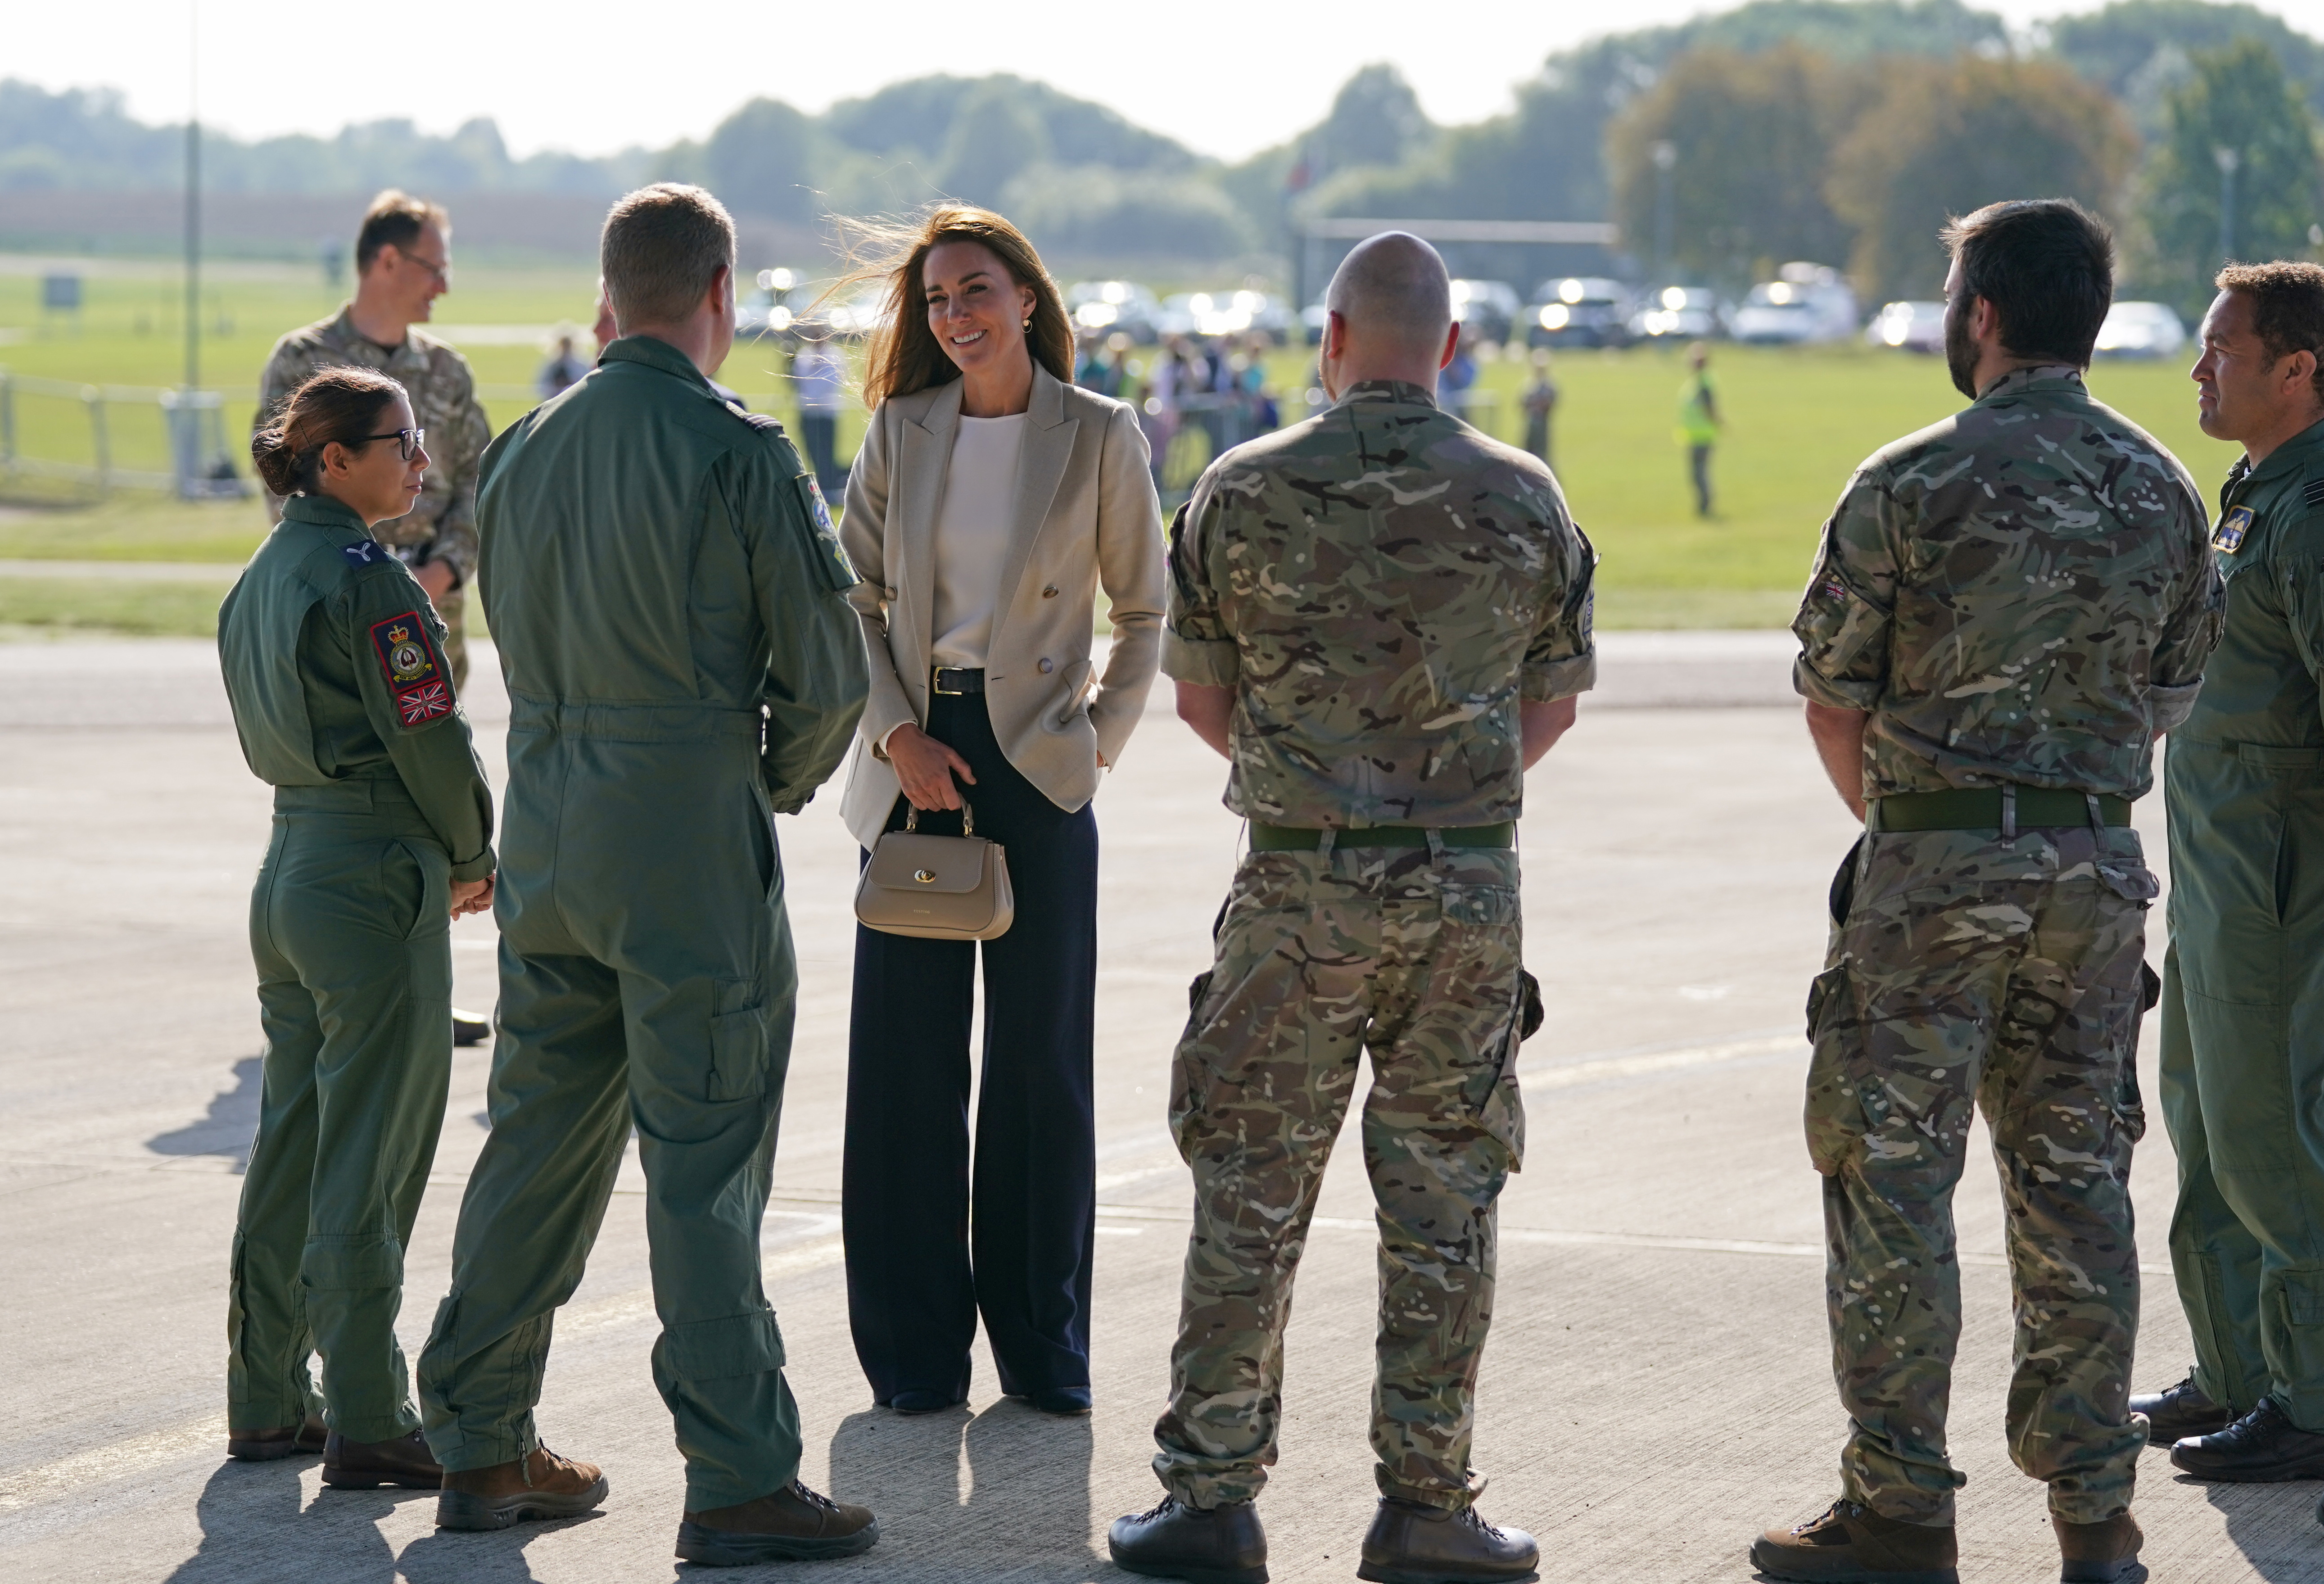 <p>The Duchess of Cambridge during a visit to RAF Brize Norton, near Oxford, to meet military personnel and civilians who helped evacuate Afghans from their country. Picture date: Wednesday September 15, 2021.</p>